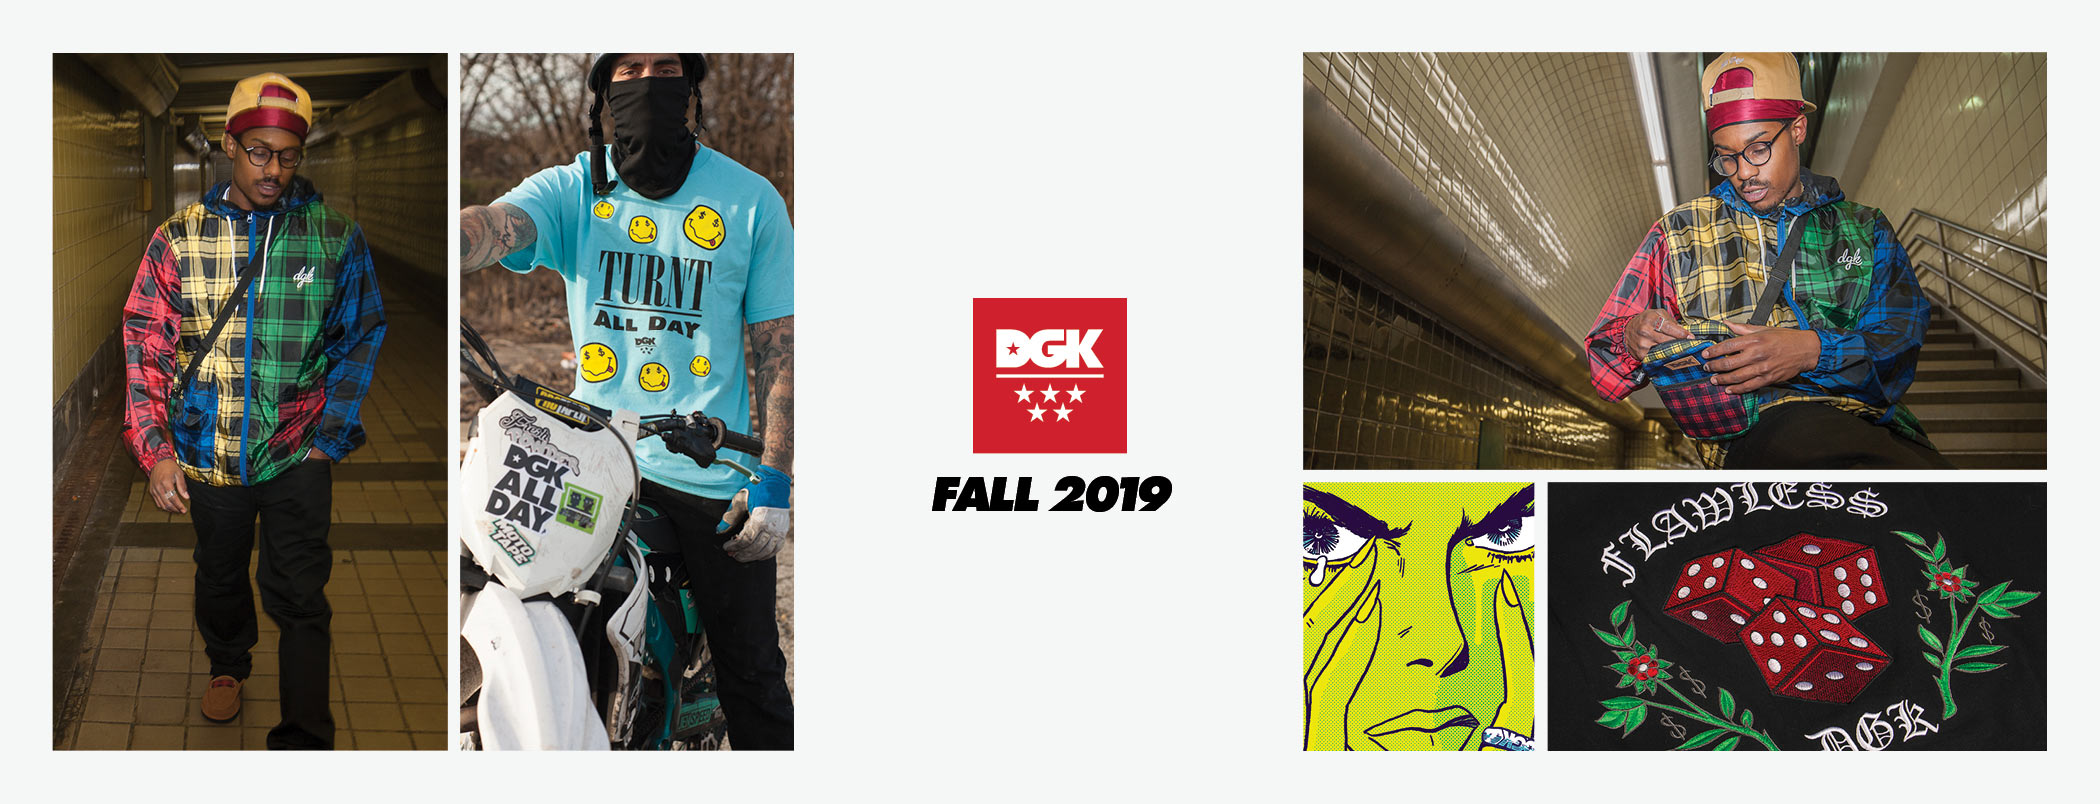 DGK Fall 19 Flawless Collection